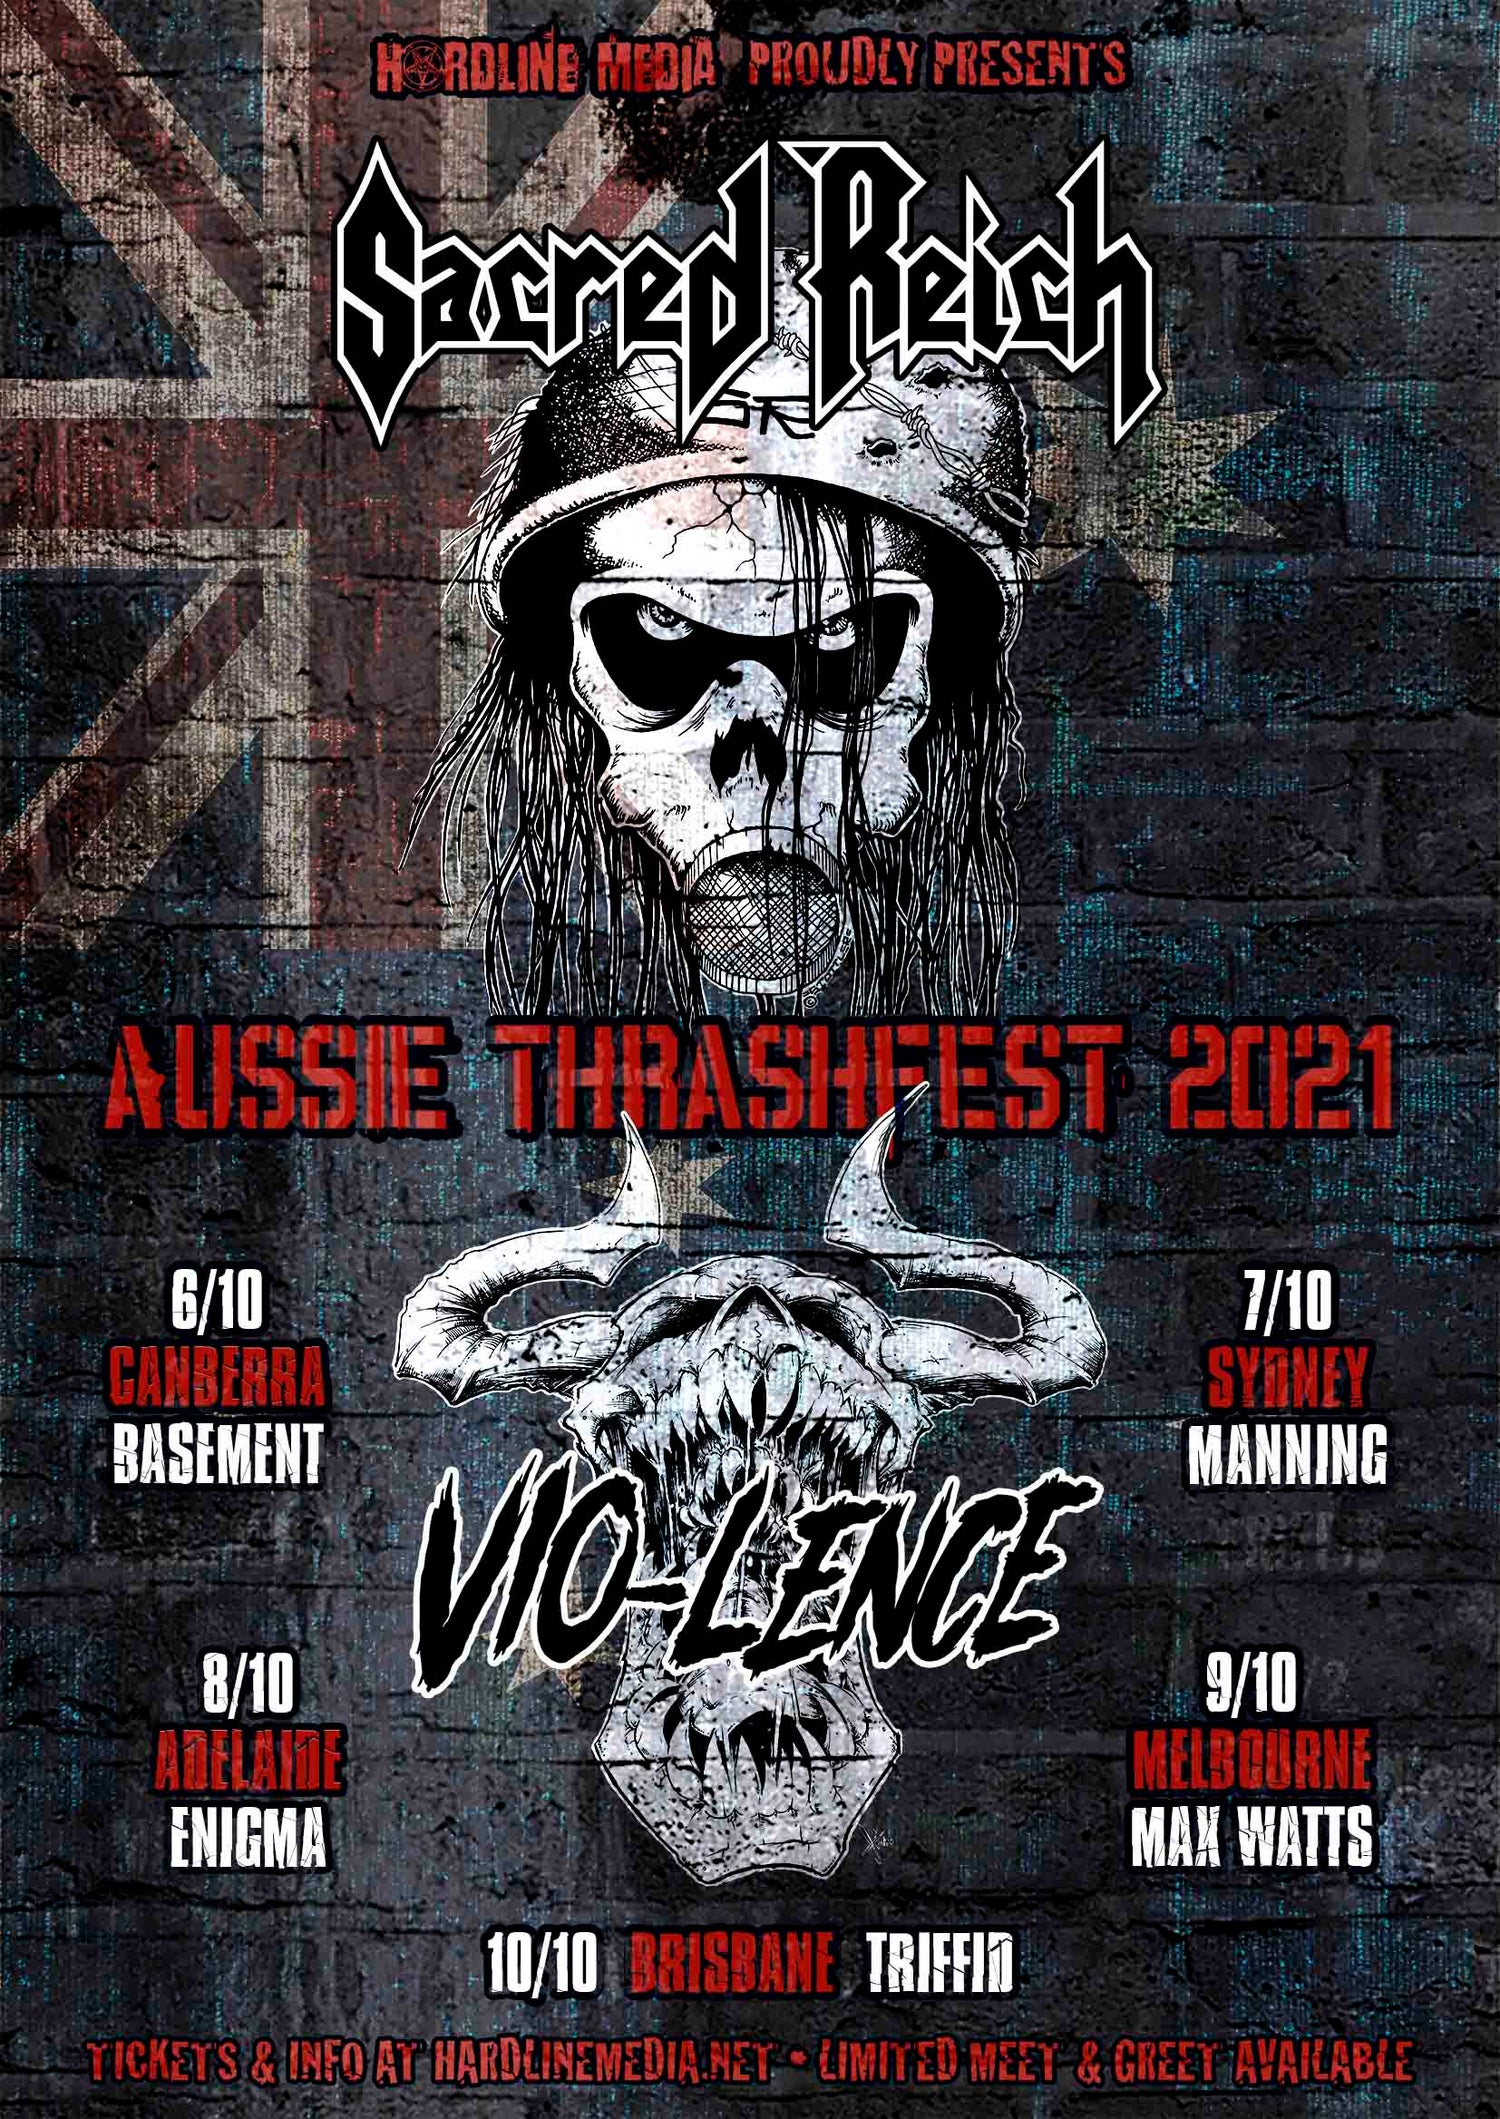 Image of GO TO OZTIX.COM.AU!!! GA TICKET - SACRED REICH + VIO-LENCE - MELBOURNE, MAX WATTS - SAT 9 OCT 2021